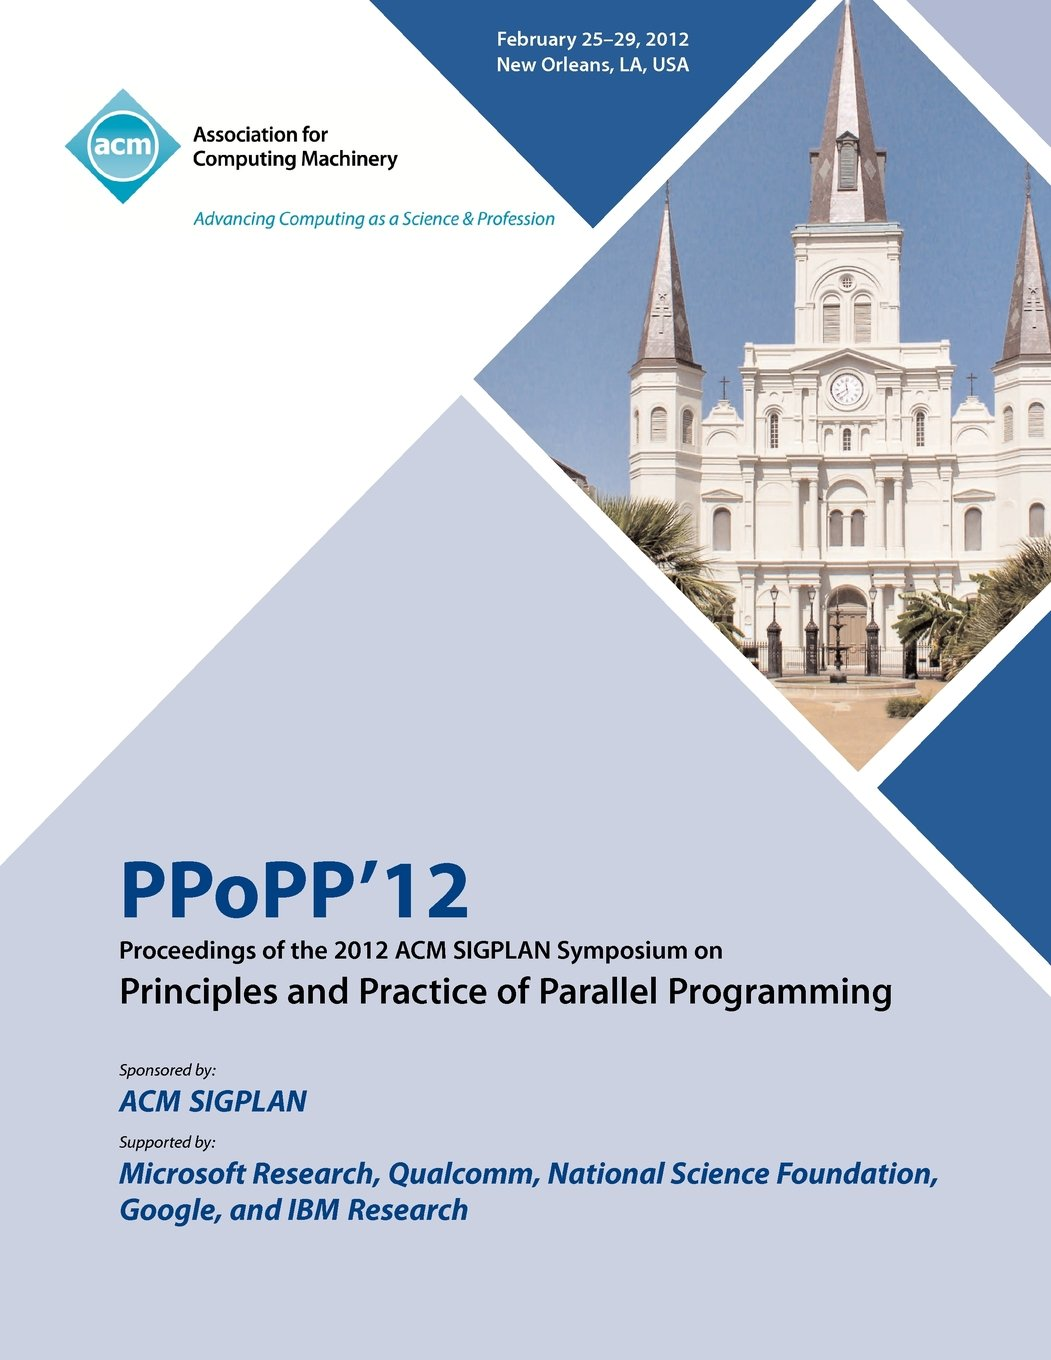 PPoPP 12 Proceedings of the 2012 ACM SIGPLAN Symposium on Principles and Practice of Parallel Programming ebook